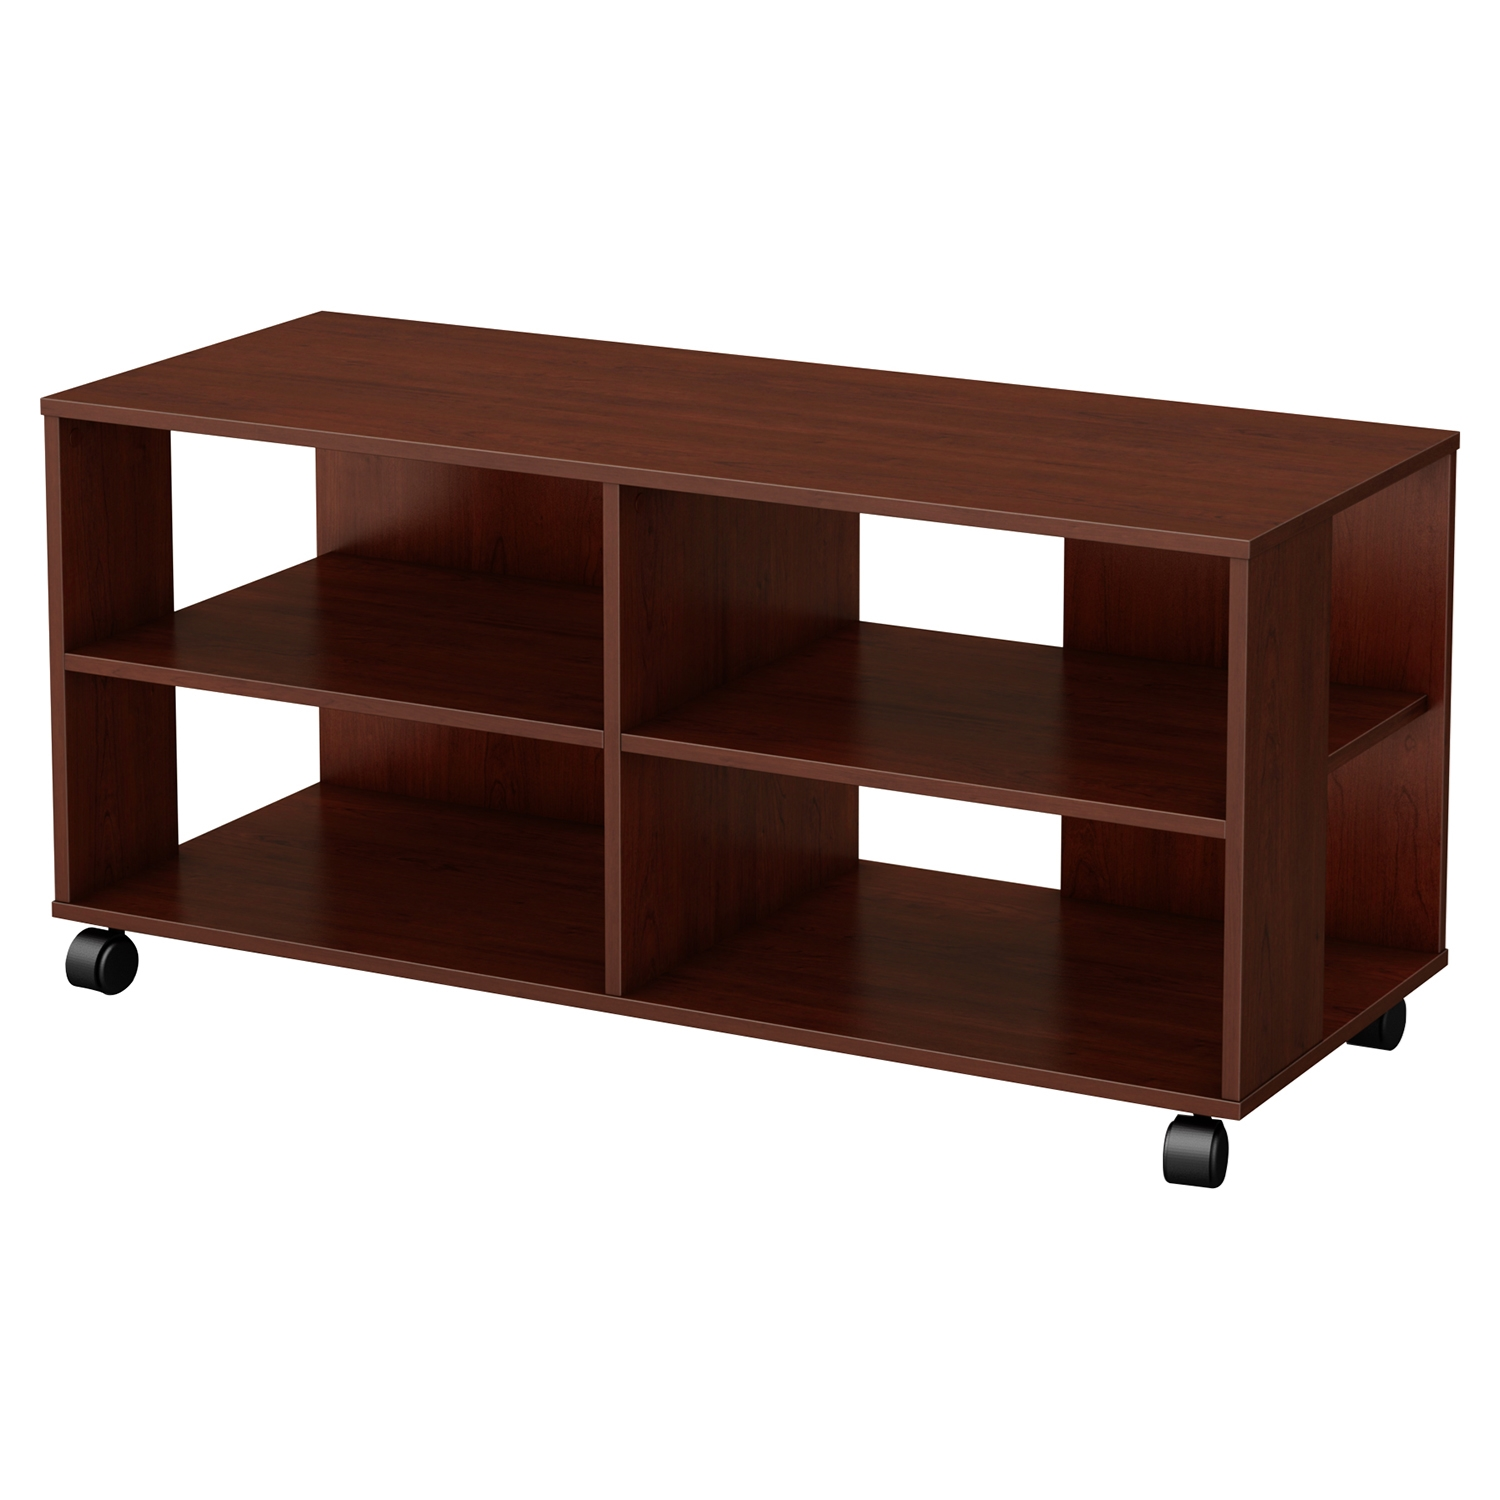 Jambory Storage Unit - Casters, Royal Cherry - SS-4946606